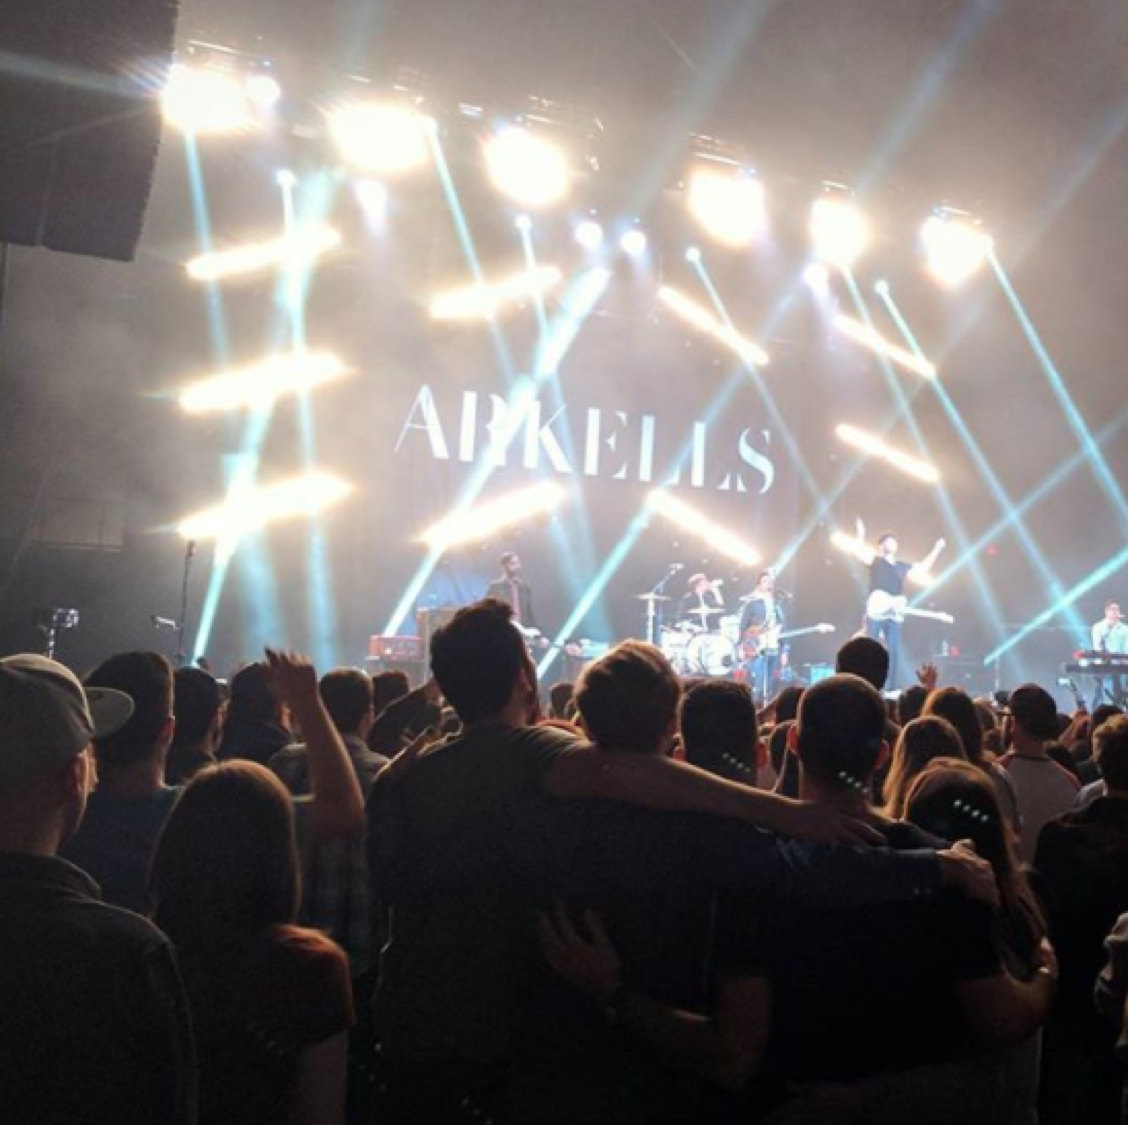 Thanks again,@arkellsmusicfor coming back to the west coast!#arkells#canadianmade #youdontputbabyinacorner#indie#rockandroll #favouritethings#concerts#ubc#vancouverlifeBy @atomadam90